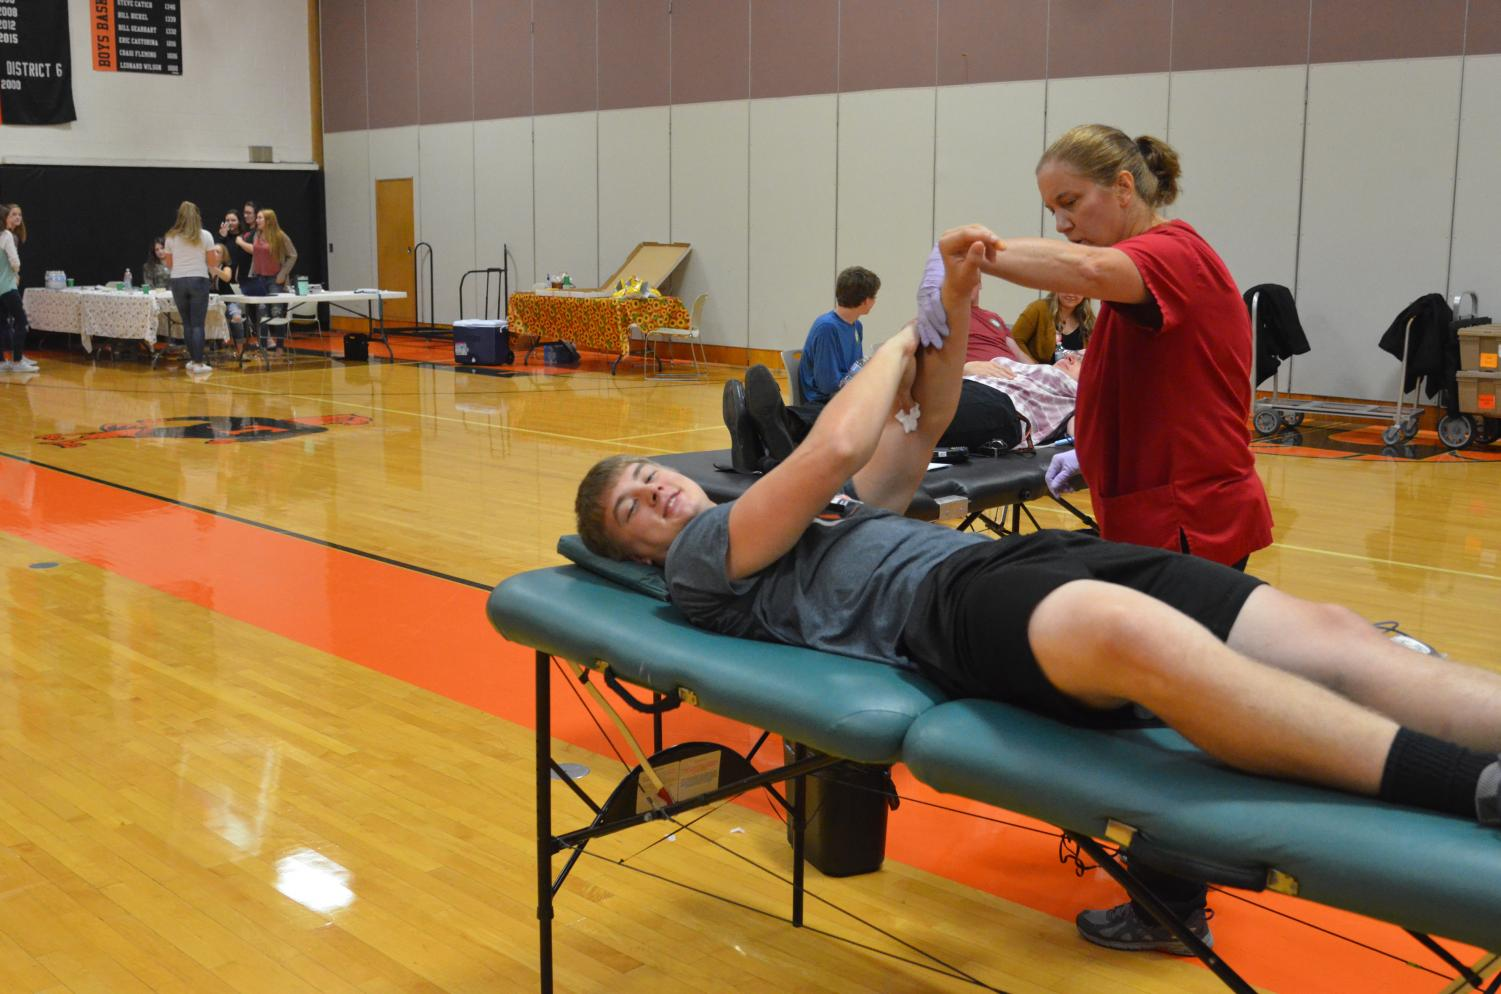 Aric Reader donating blood at last year's blood drive.